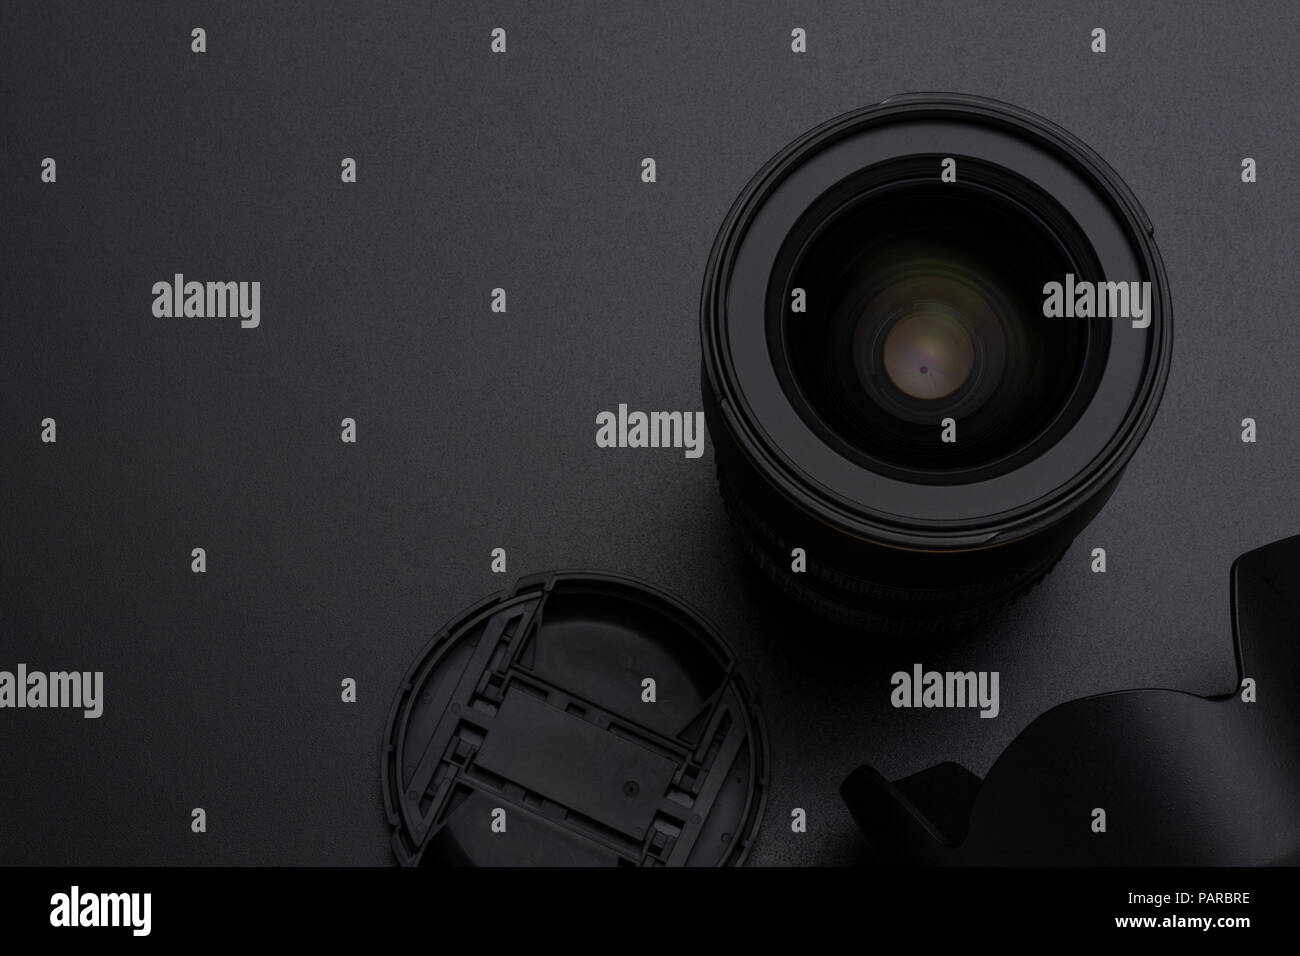 Photo DSLR camera or video lens, hood and front cap close-up image on black background - Stock Image